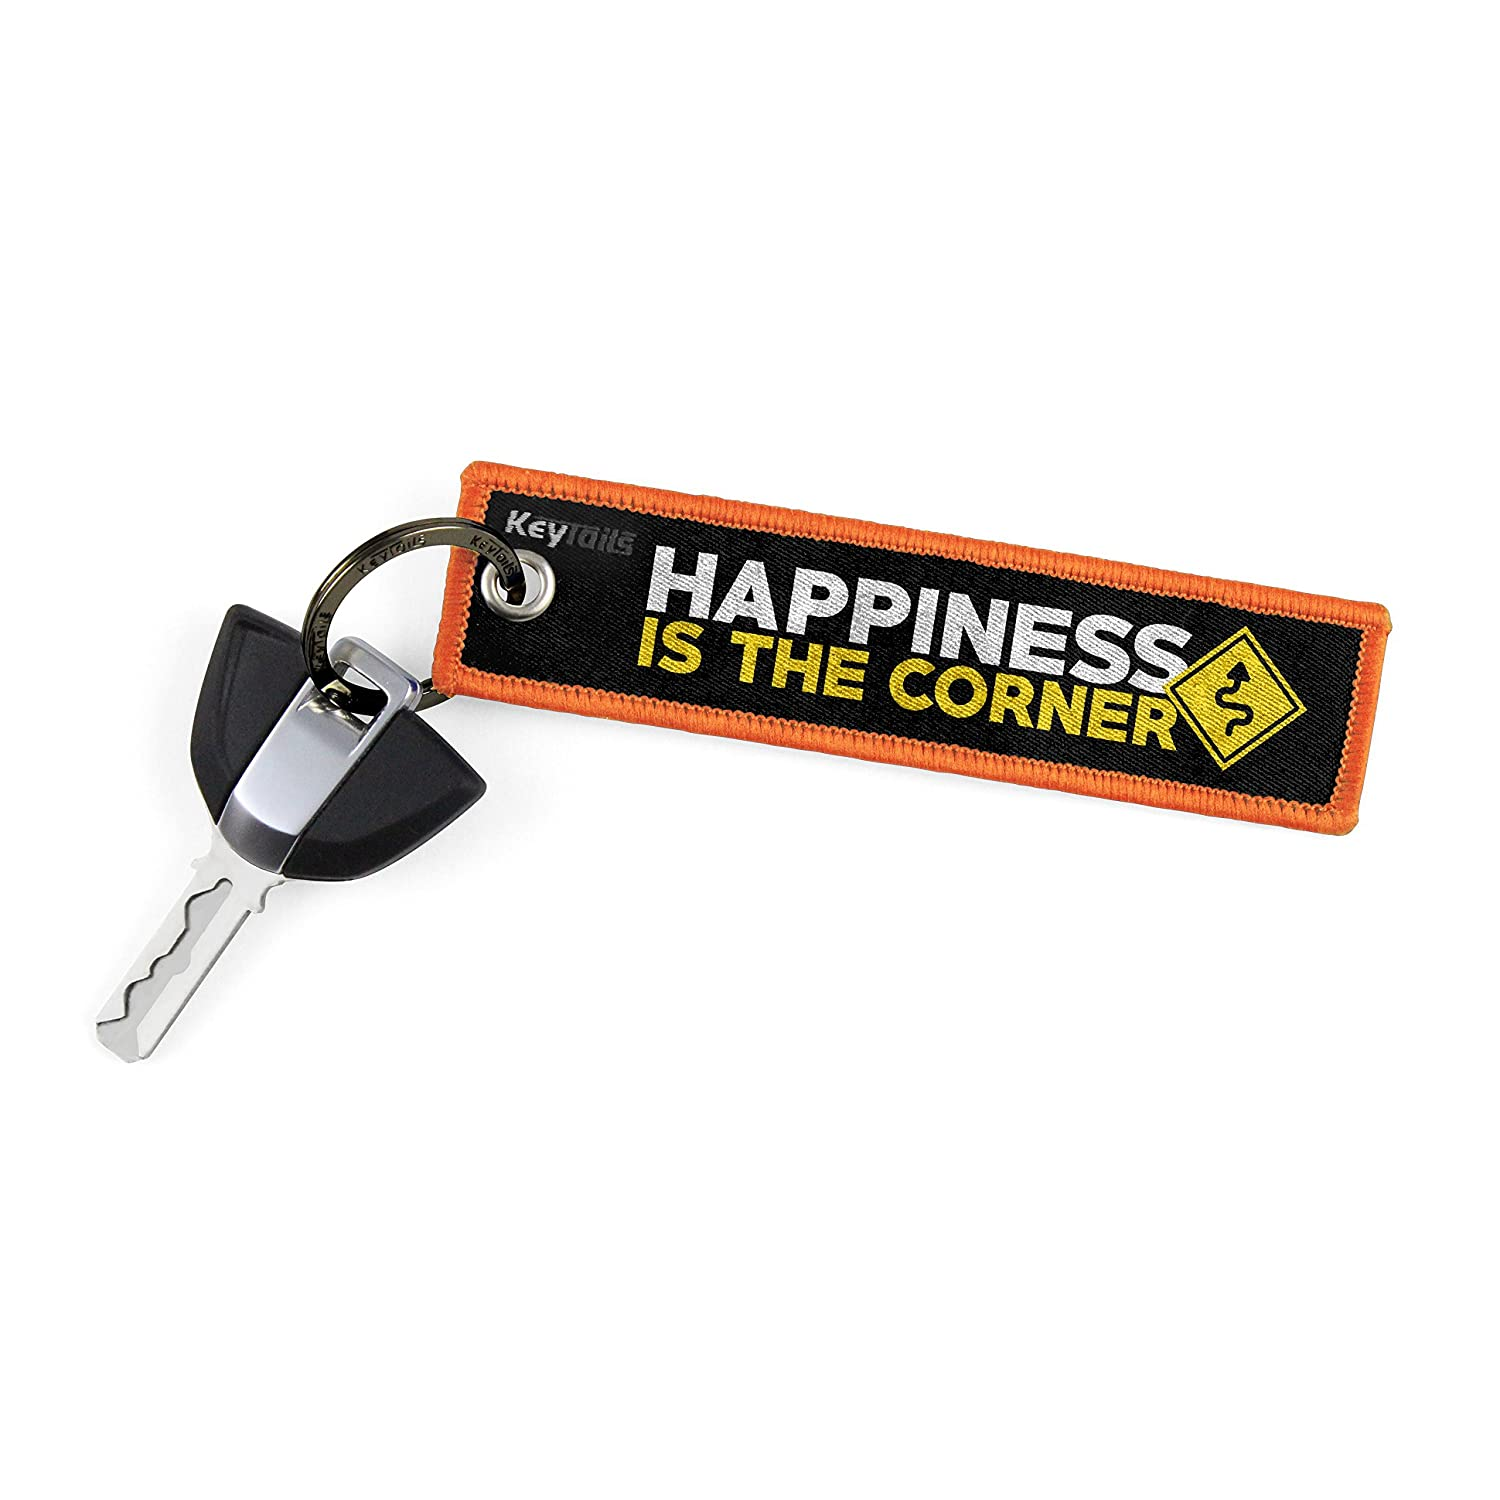 ATV Premium Quality Key Tag for Motorcycle Key Tails UTV Car Happiness is The Corner KEYTAILS Keychains Scooter